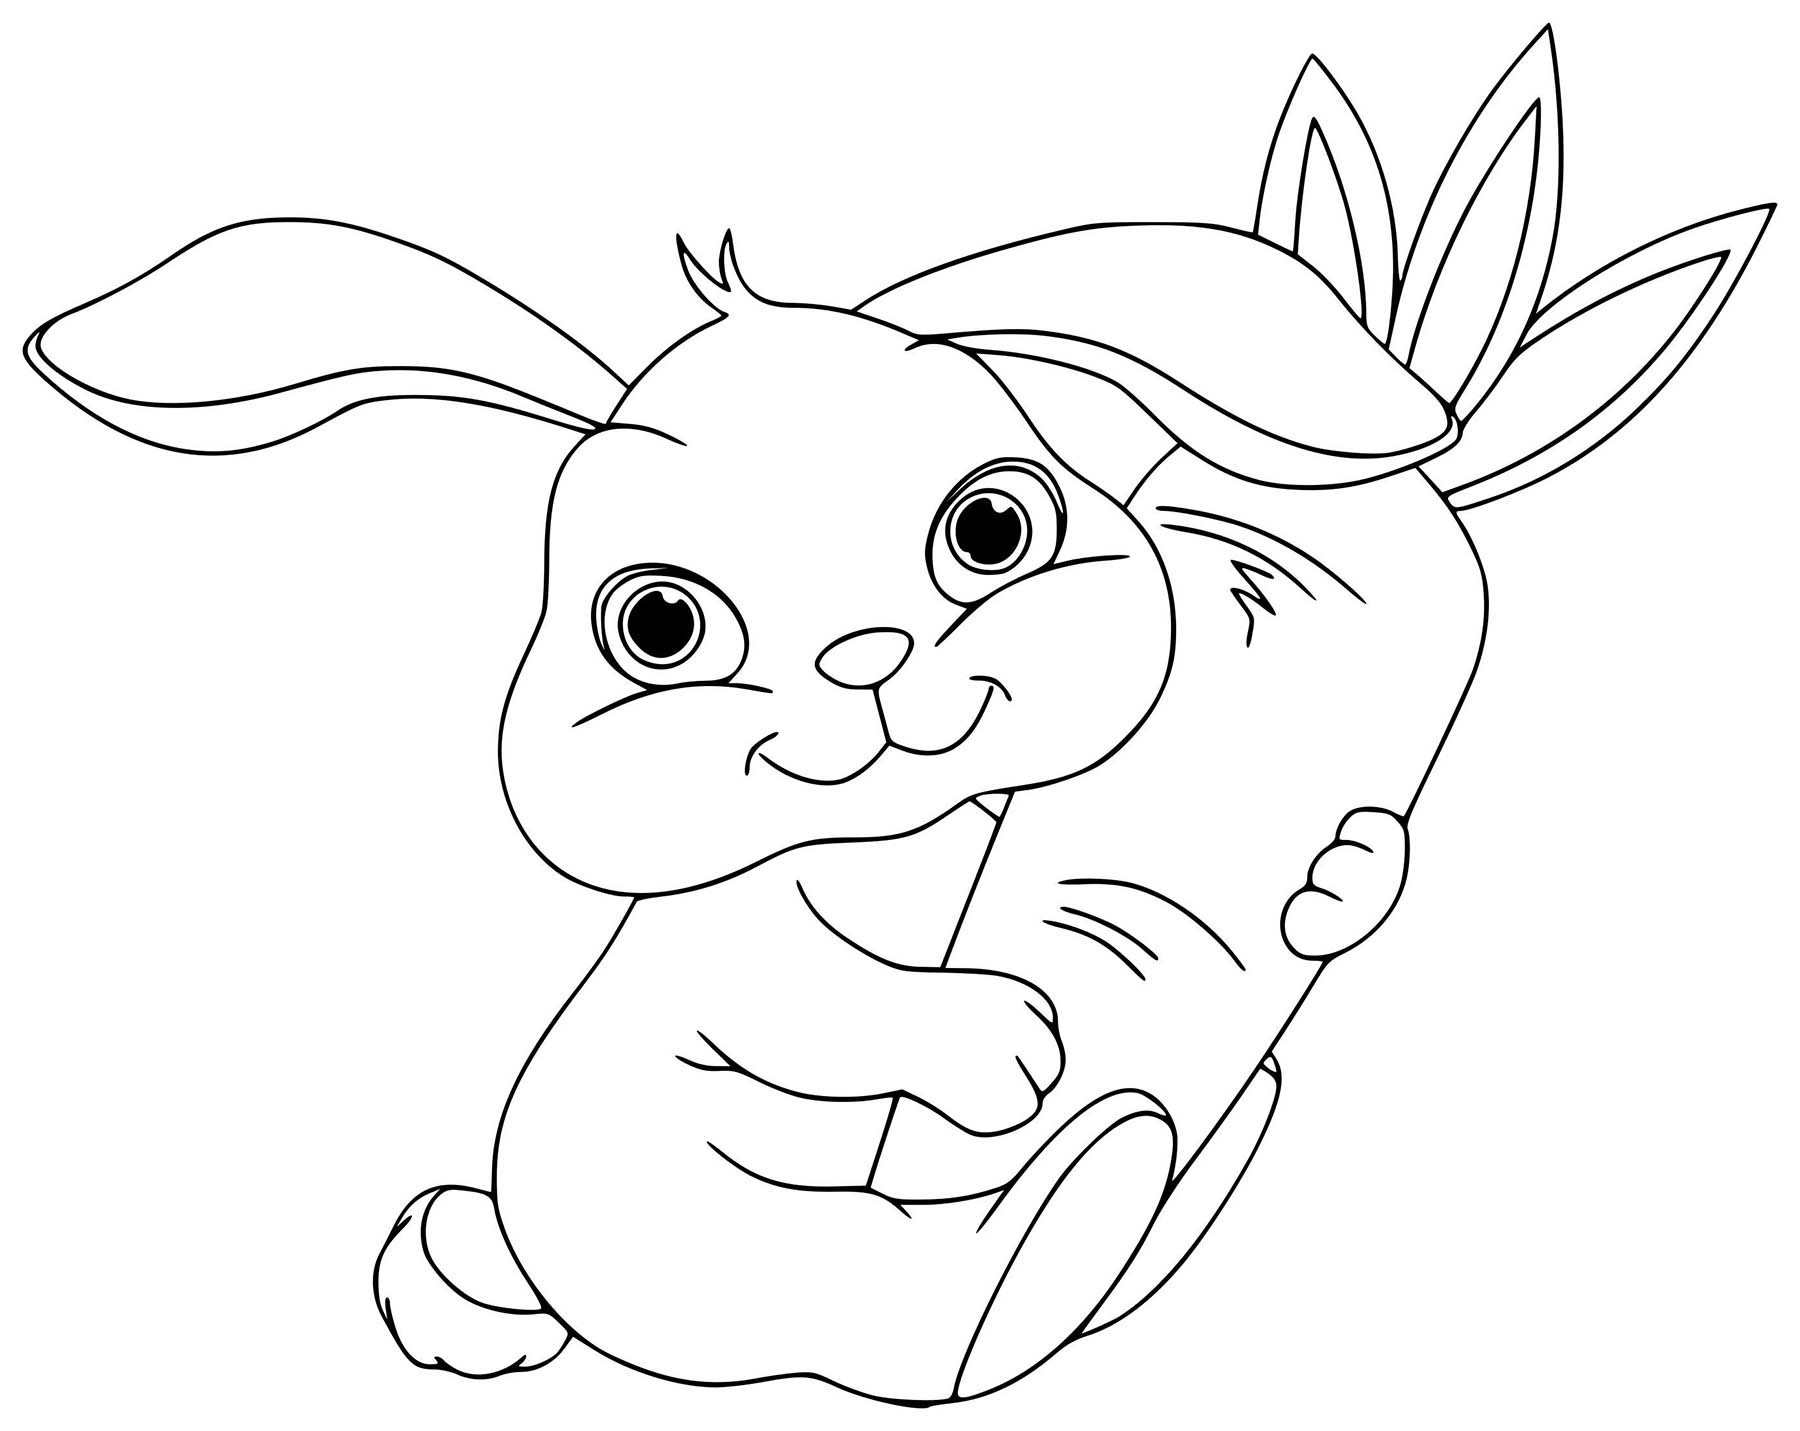 bunny coloring pages rabbit to download for free rabbit kids coloring pages pages coloring bunny 1 1